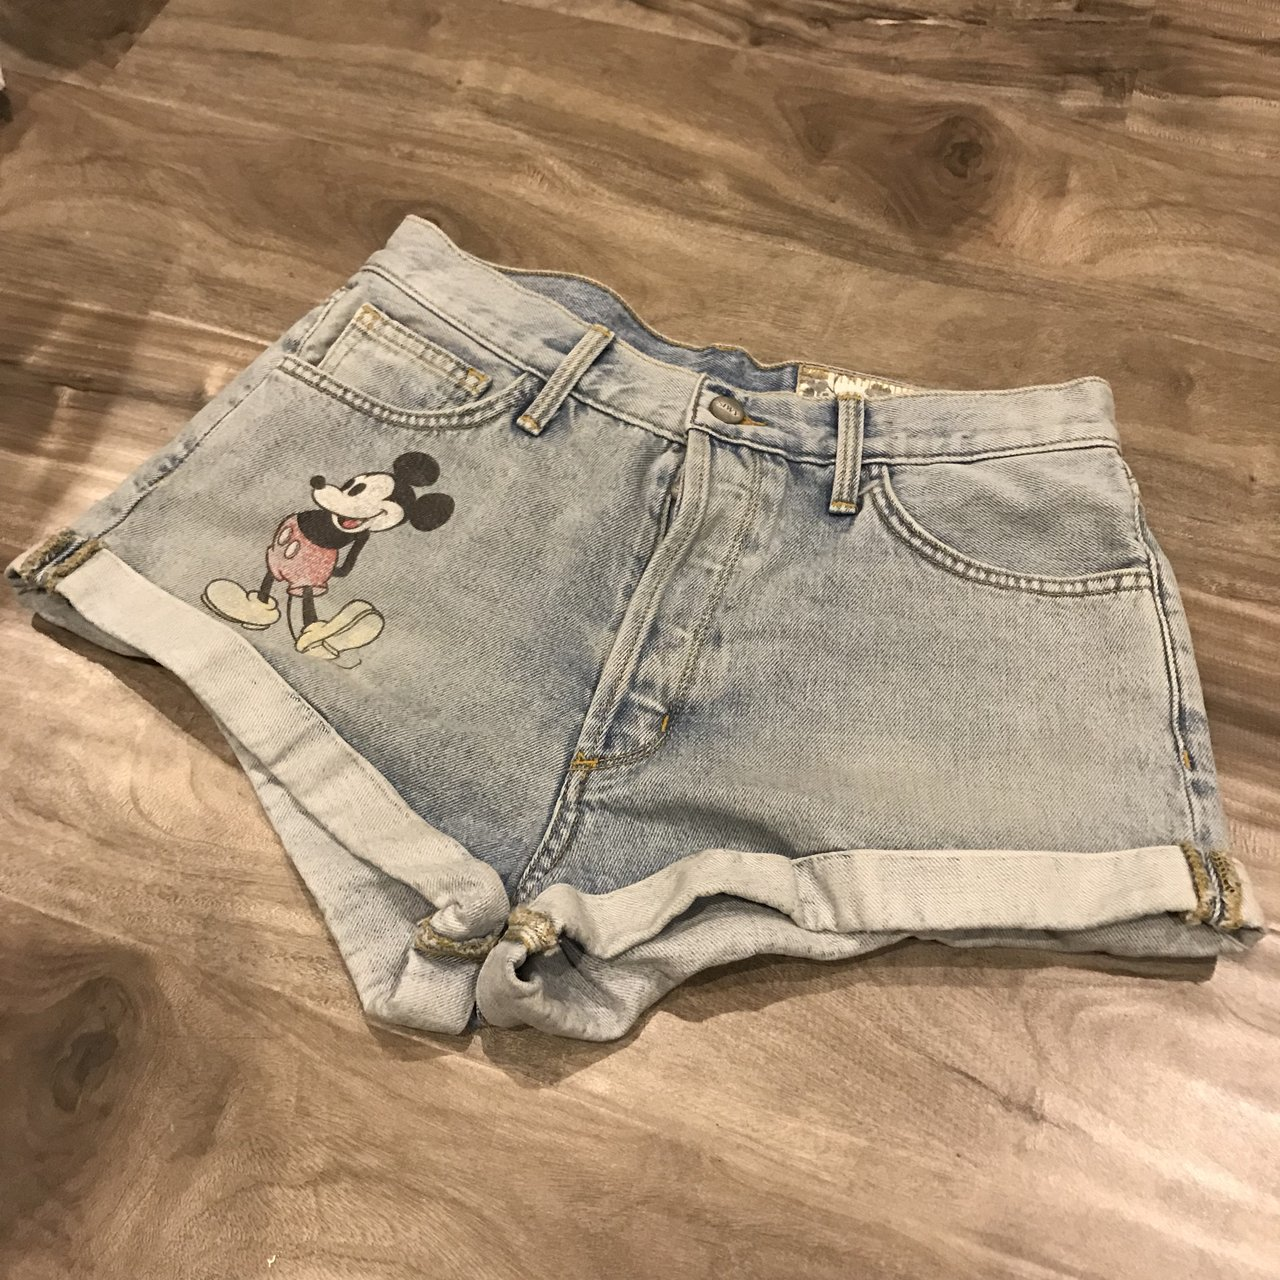 69a6a1d37c SIWY Mickey Mouse denim shorts size 28. These are sooo cute - Depop